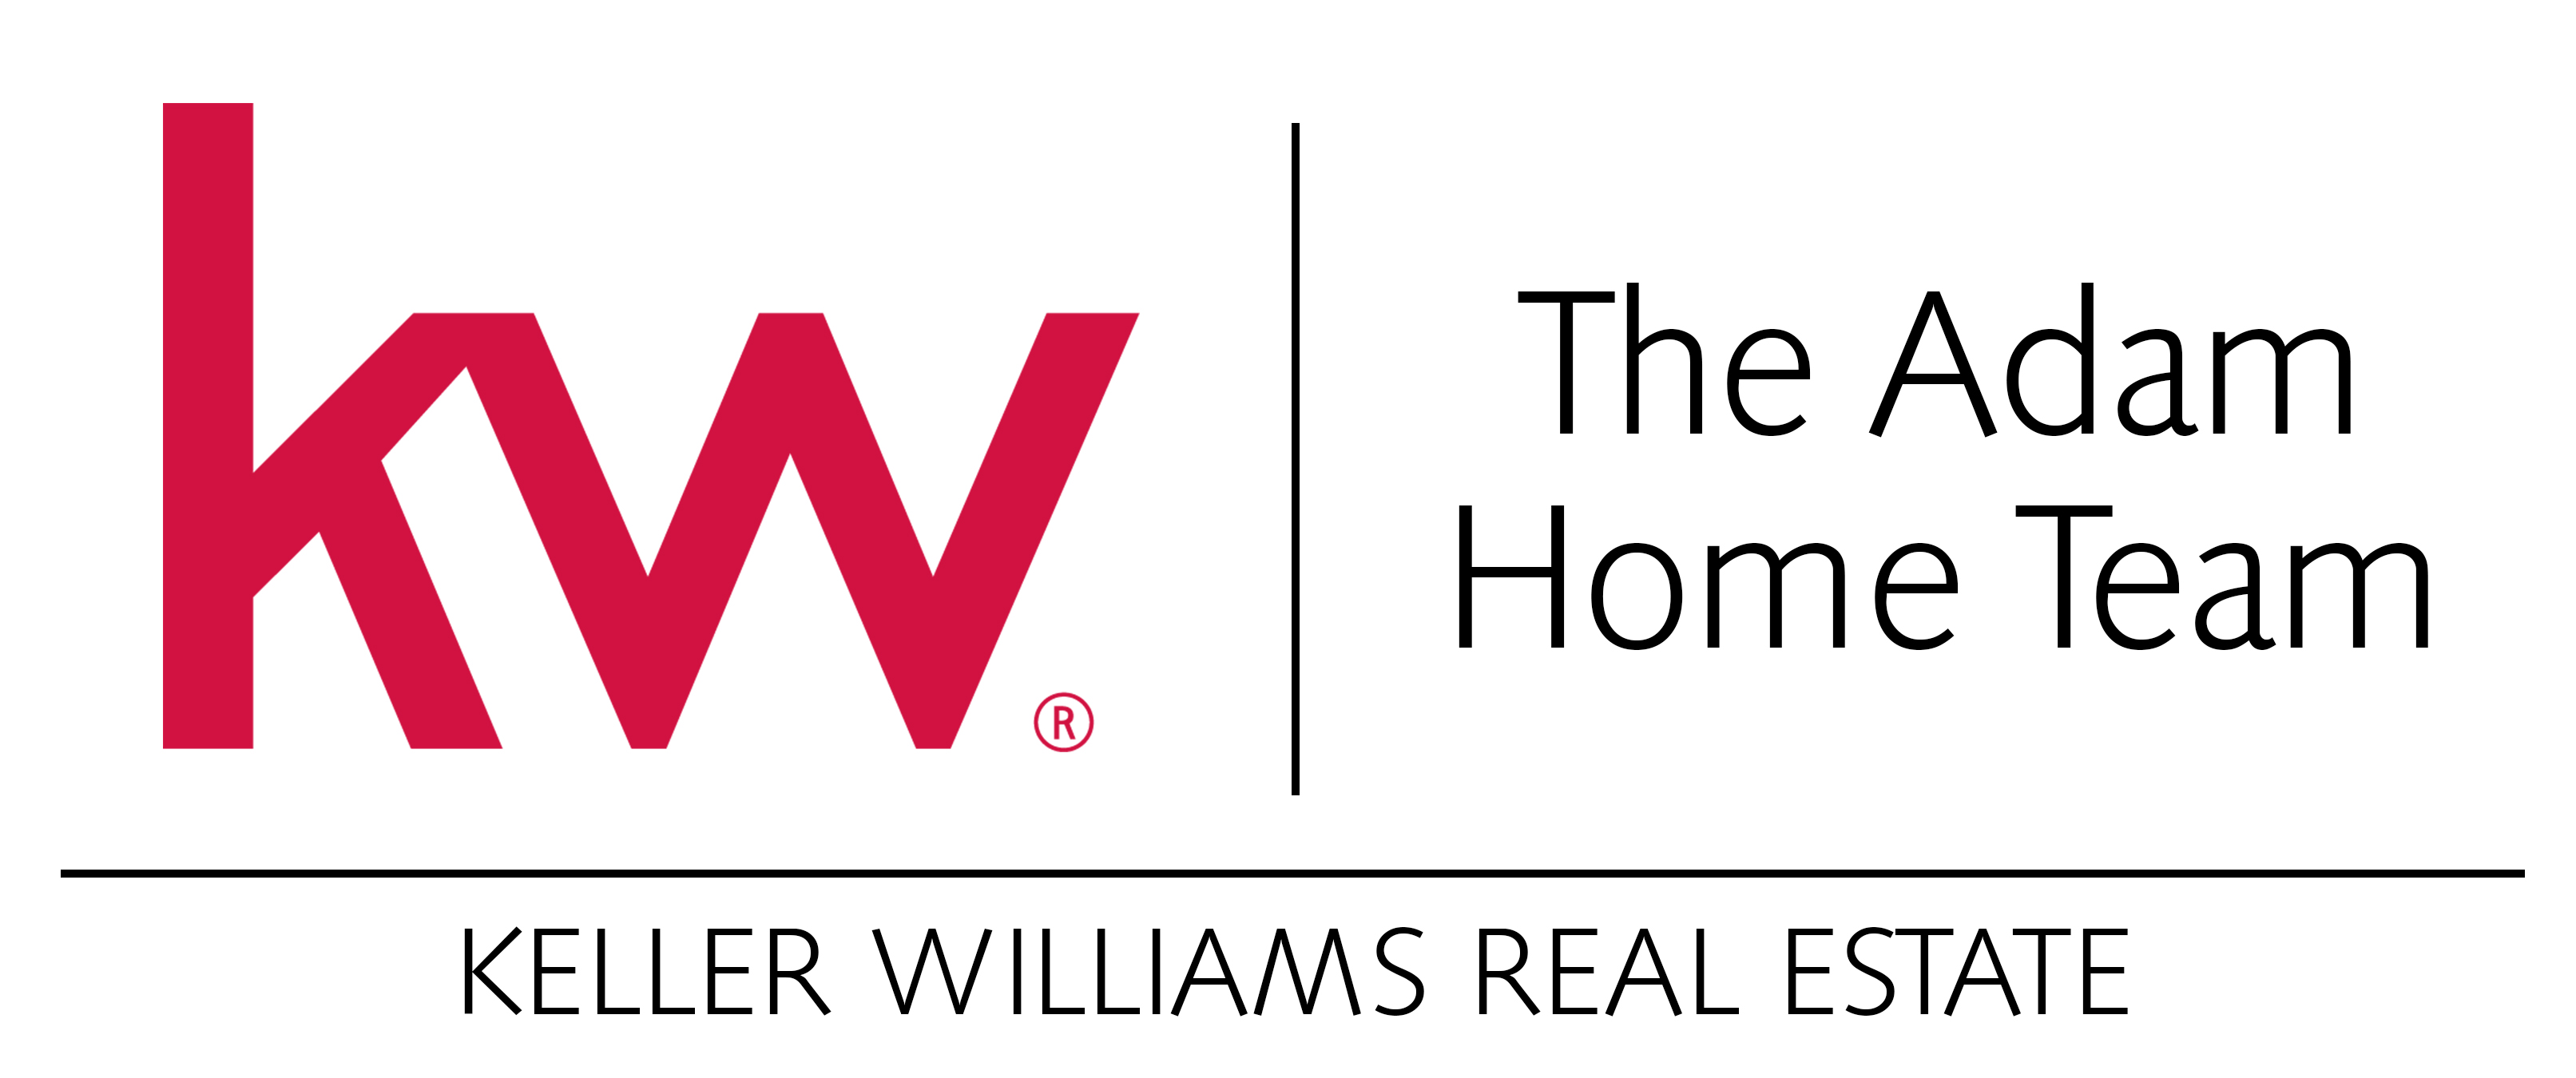 The Adam Home Team - Keller Williams Realty logo